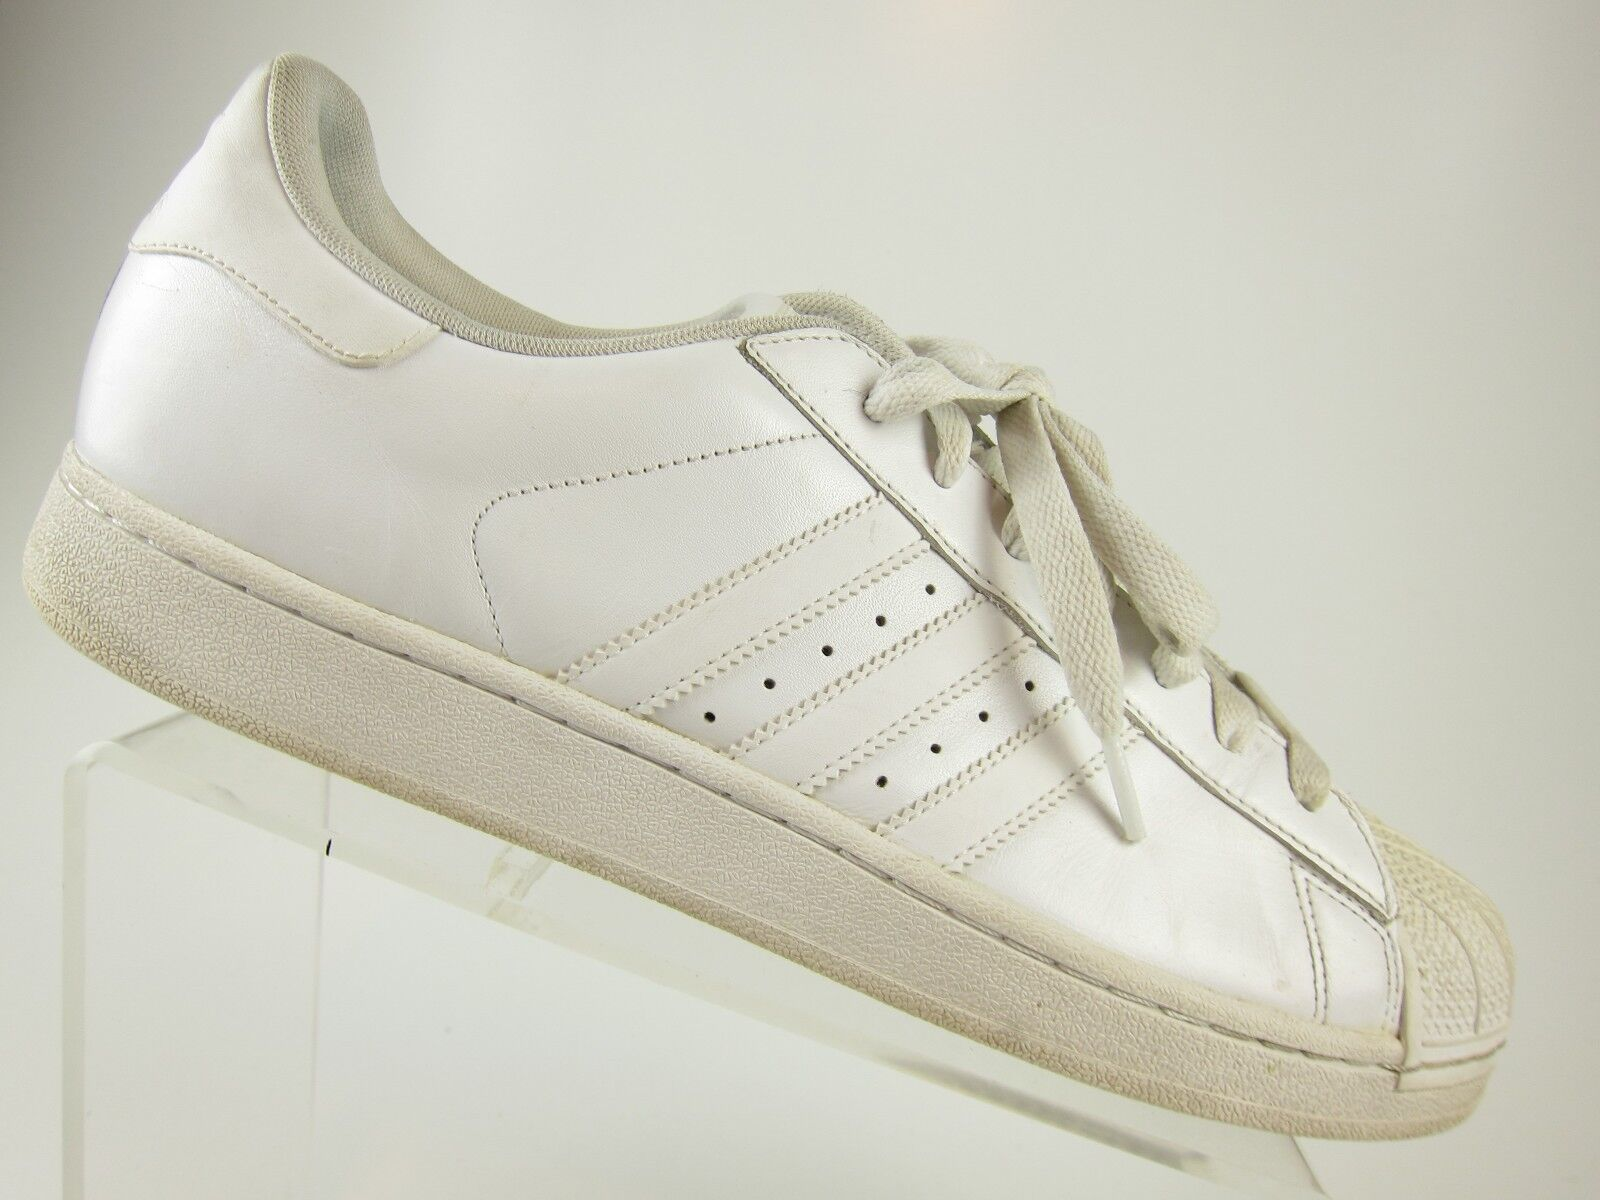 best service 67dad aa915 ADIDAS Superstar All White Shell Toe Shoes Shoes Shoes Mens Size 13  Basketball EUC Classic ddaf76